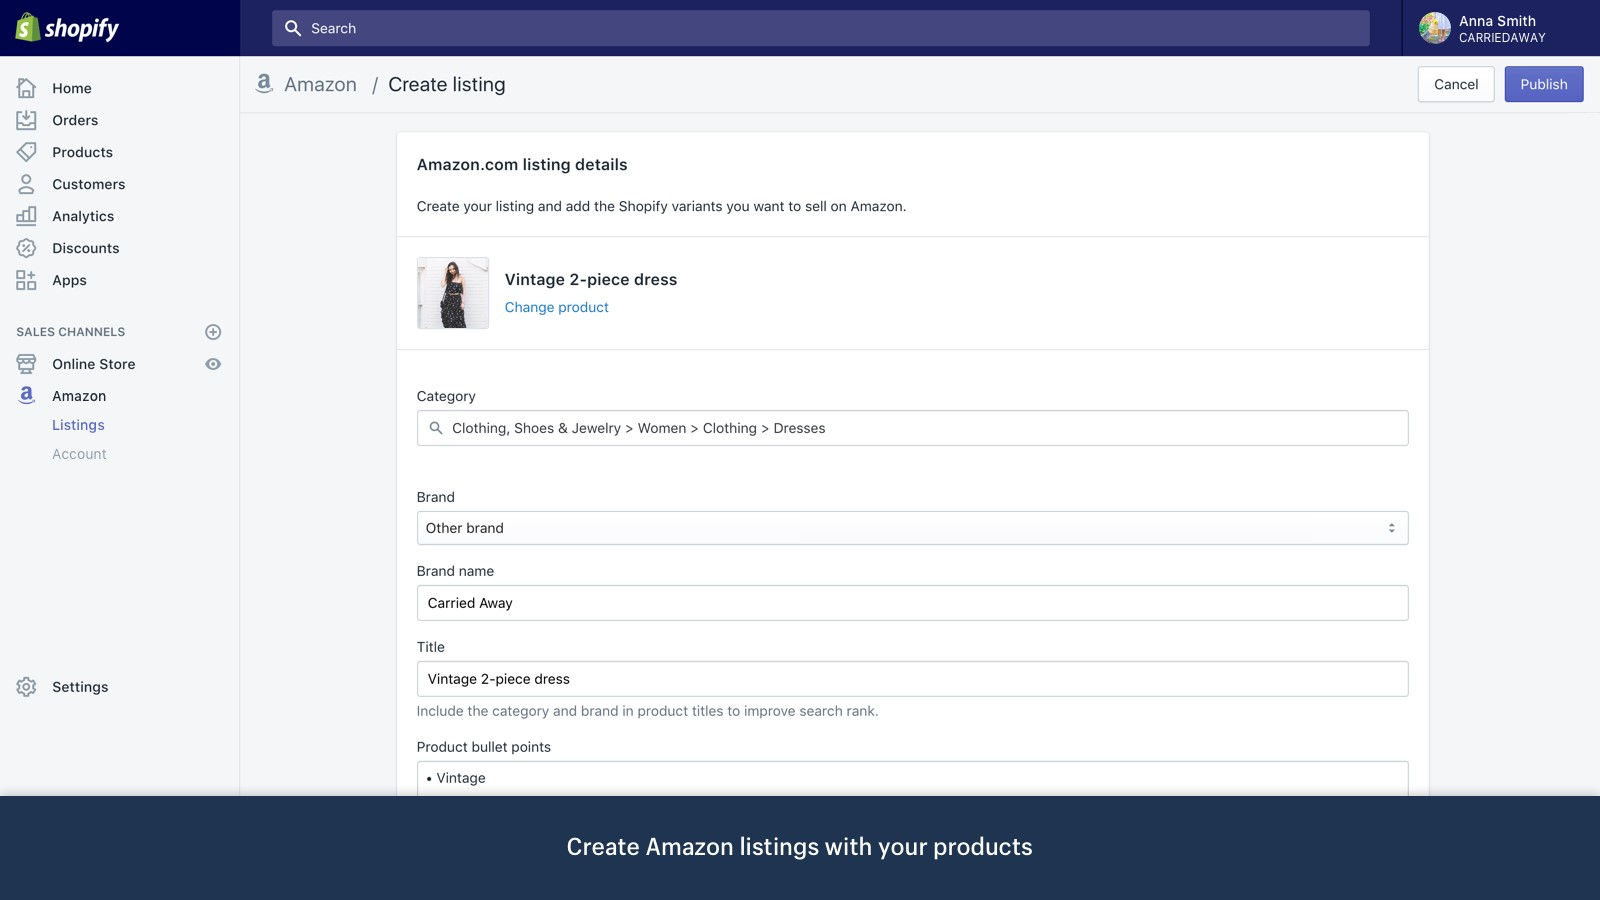 Guide on Integrating Shopify Products on Amazon 1